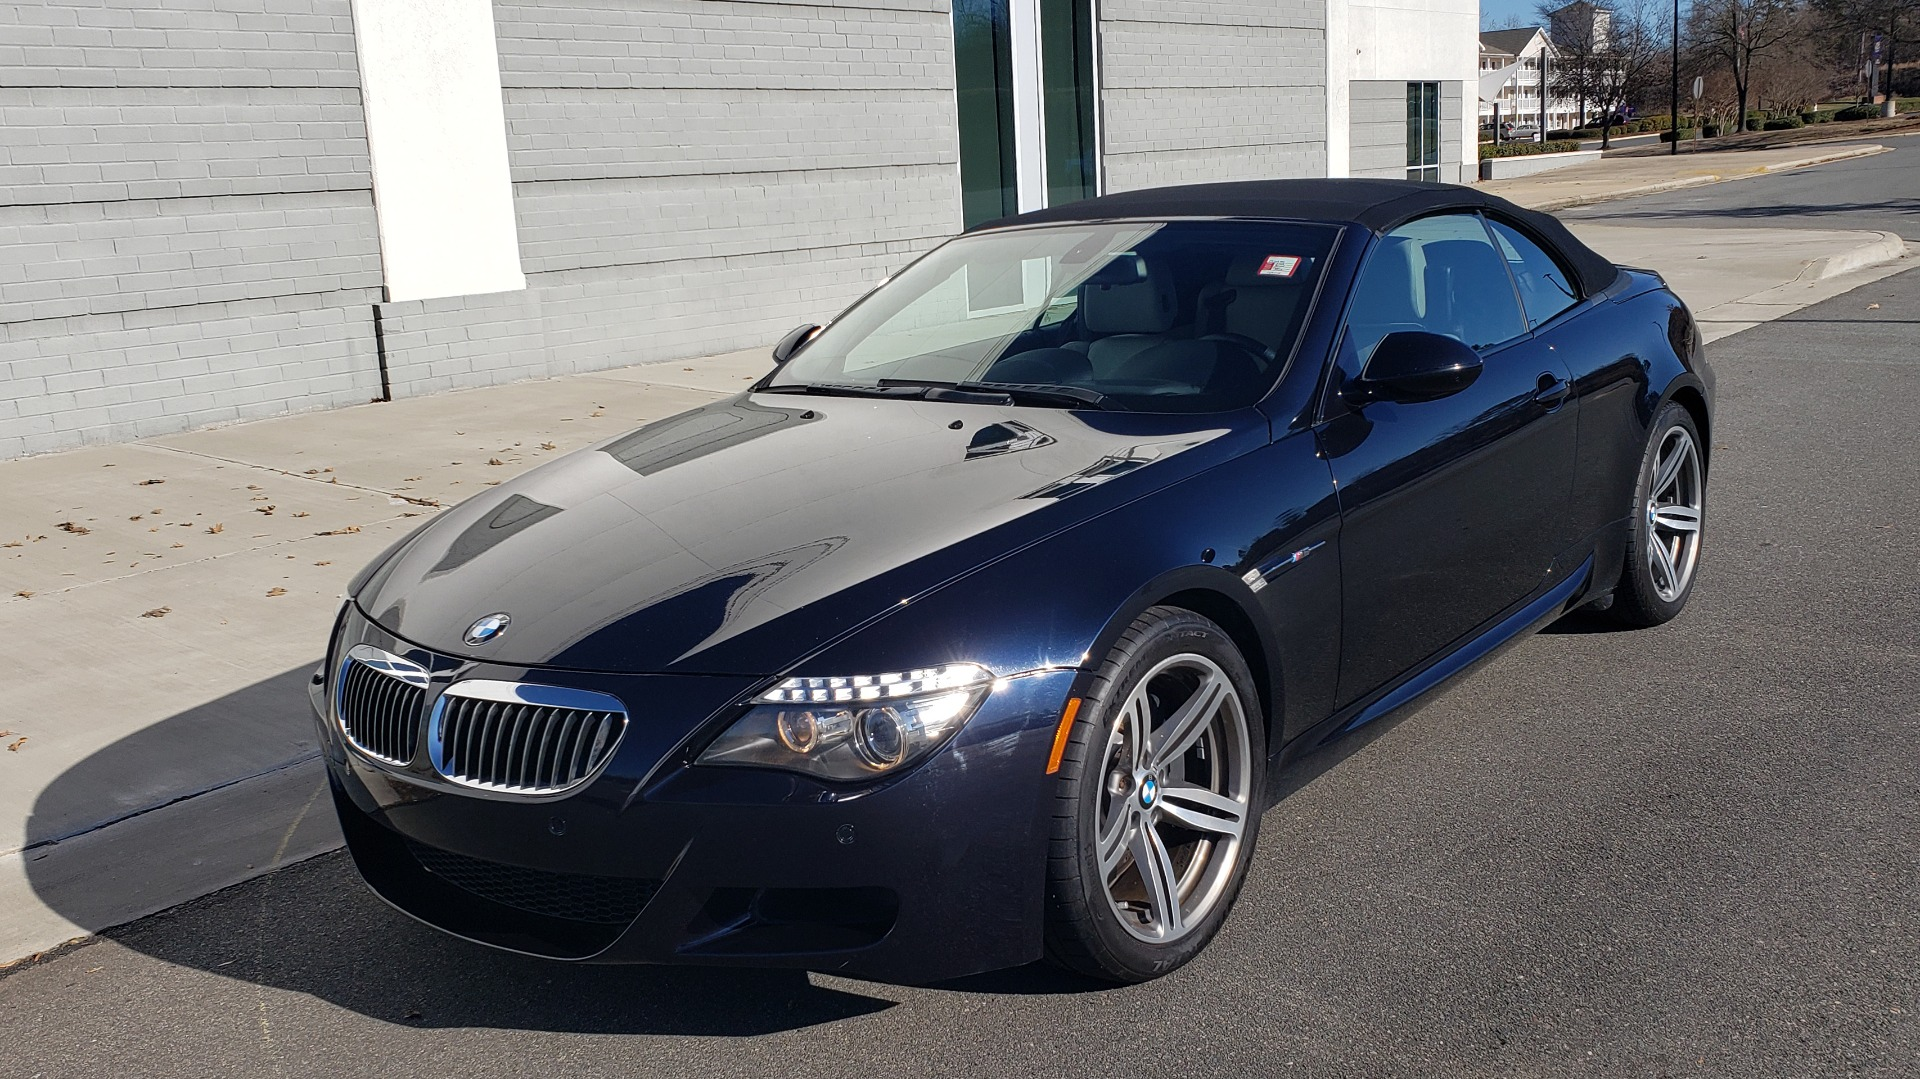 Used 2009 BMW M6 CONVERTIBLE / 5.0L V10 (500HP) / PREM SND / HUD / 19IN WHEELS for sale $24,999 at Formula Imports in Charlotte NC 28227 8